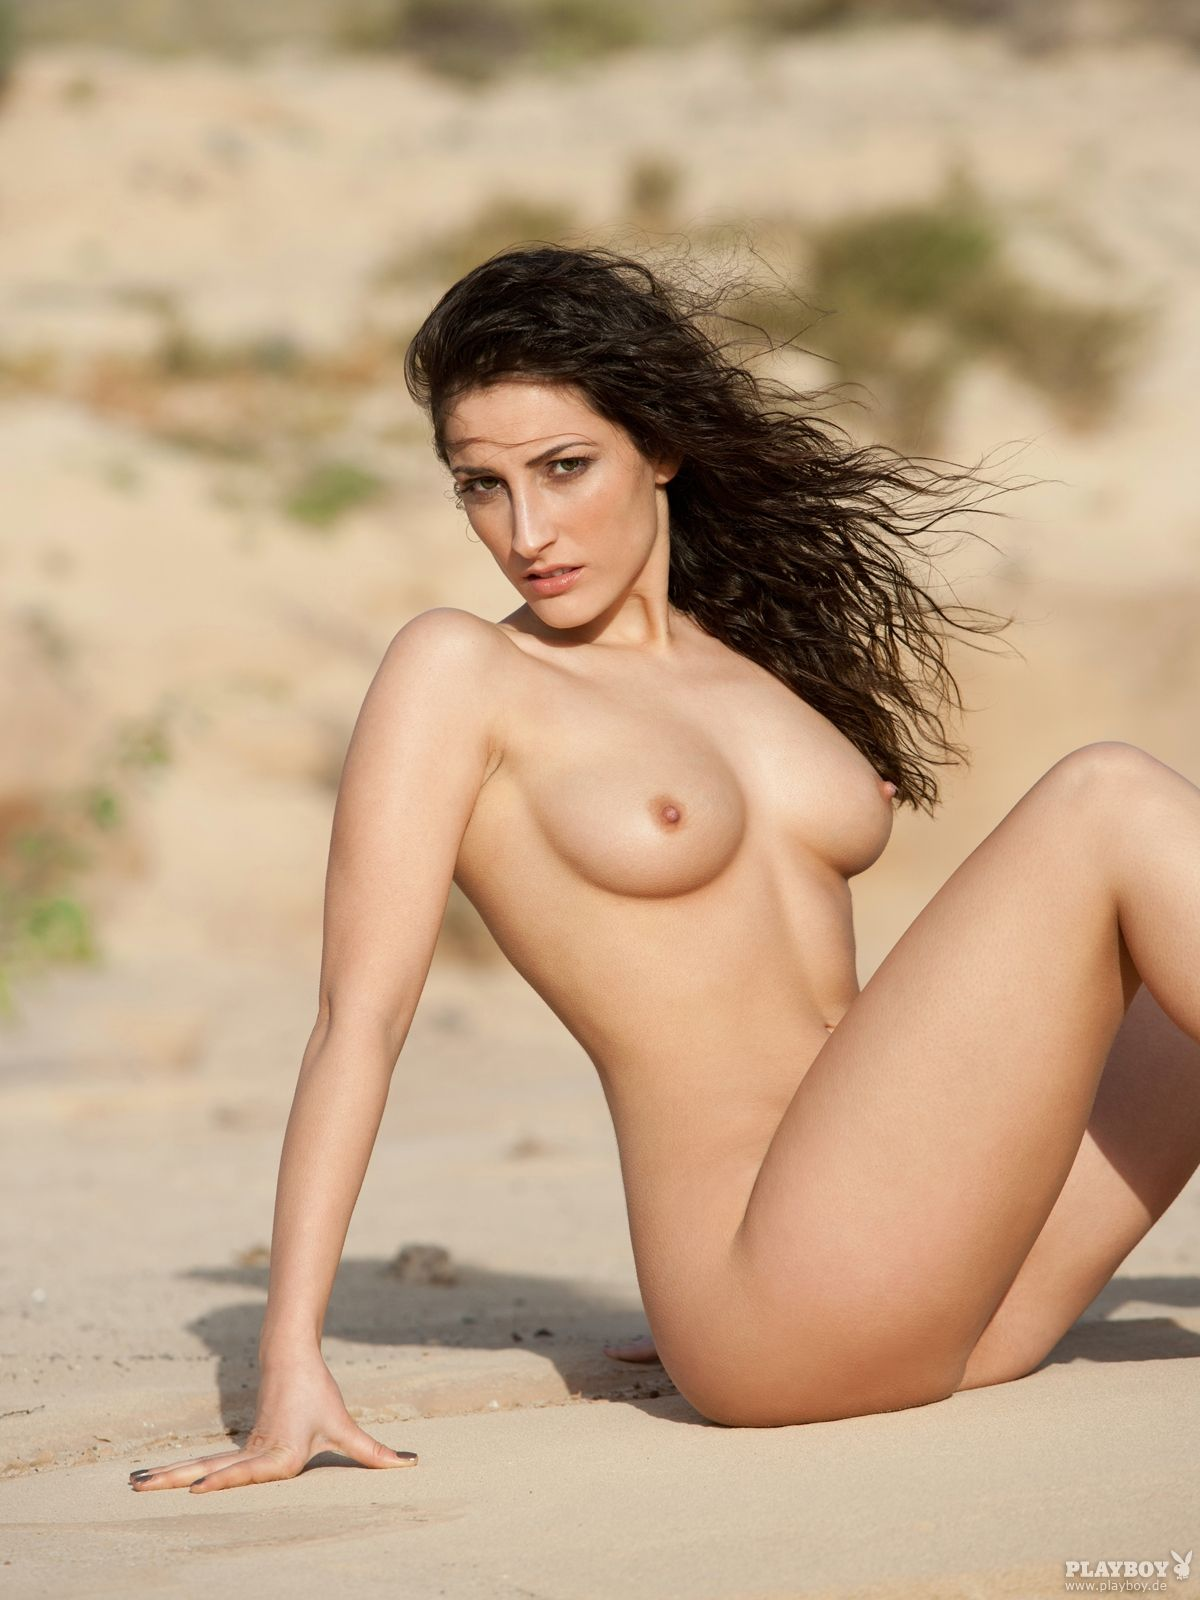 turkey hottest female model naked